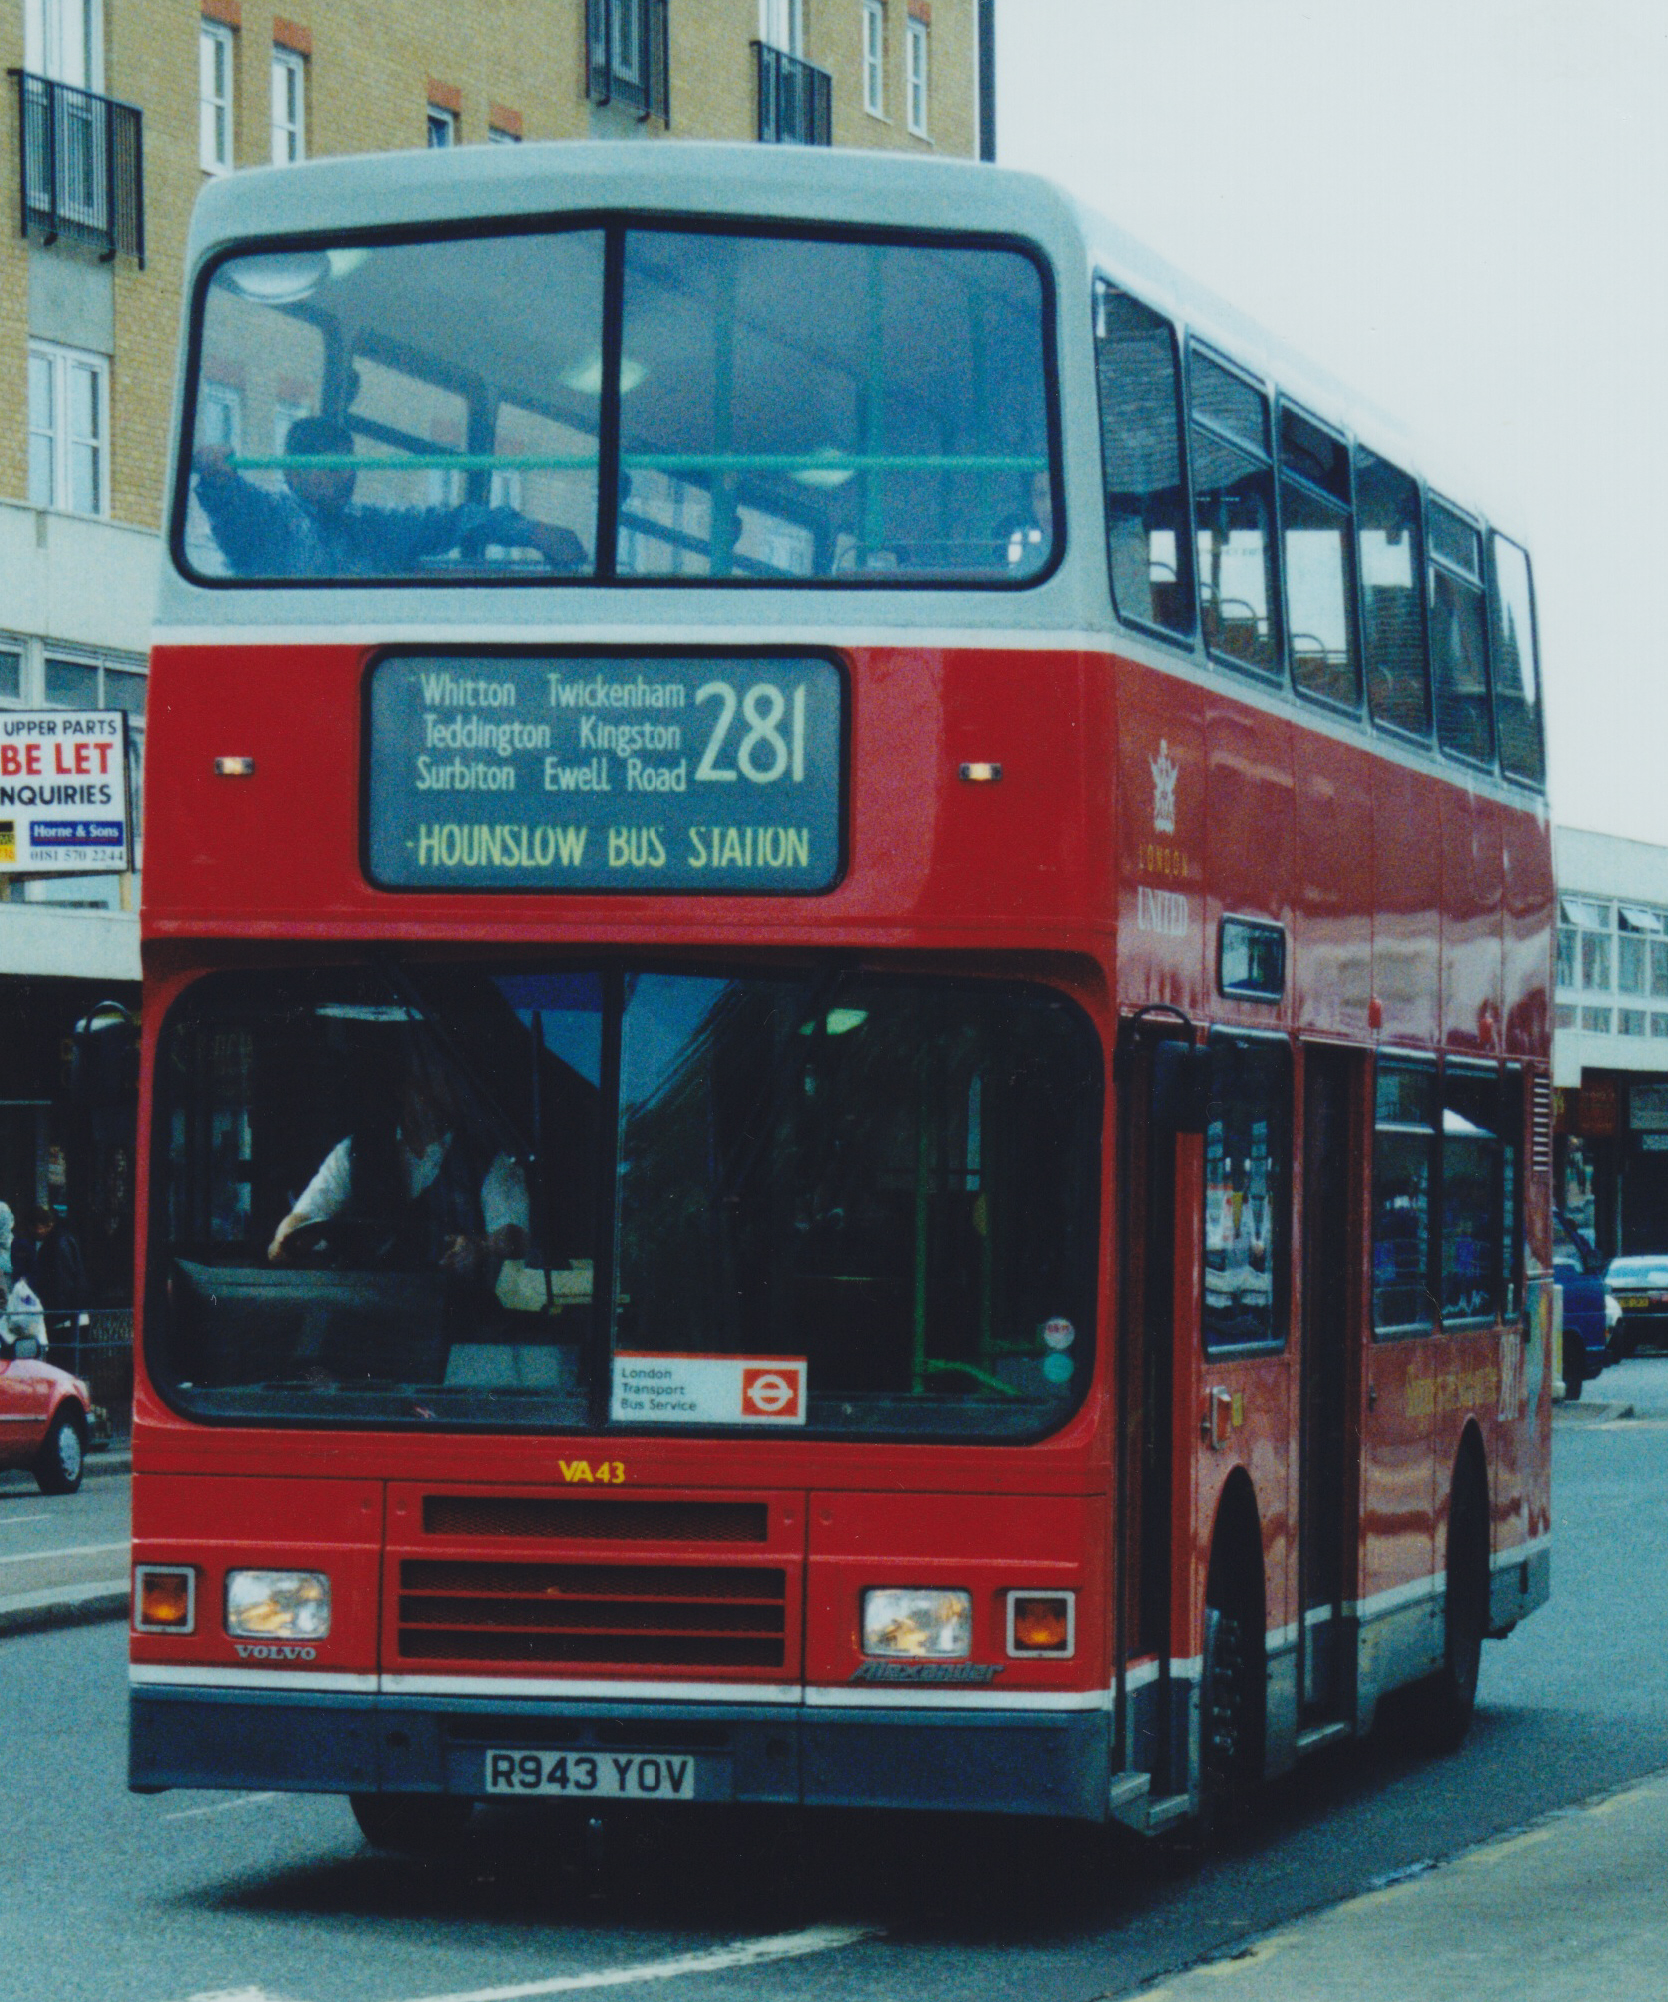 file:london united bus va43 (r943 yov) 1998 volvo olympian alexander